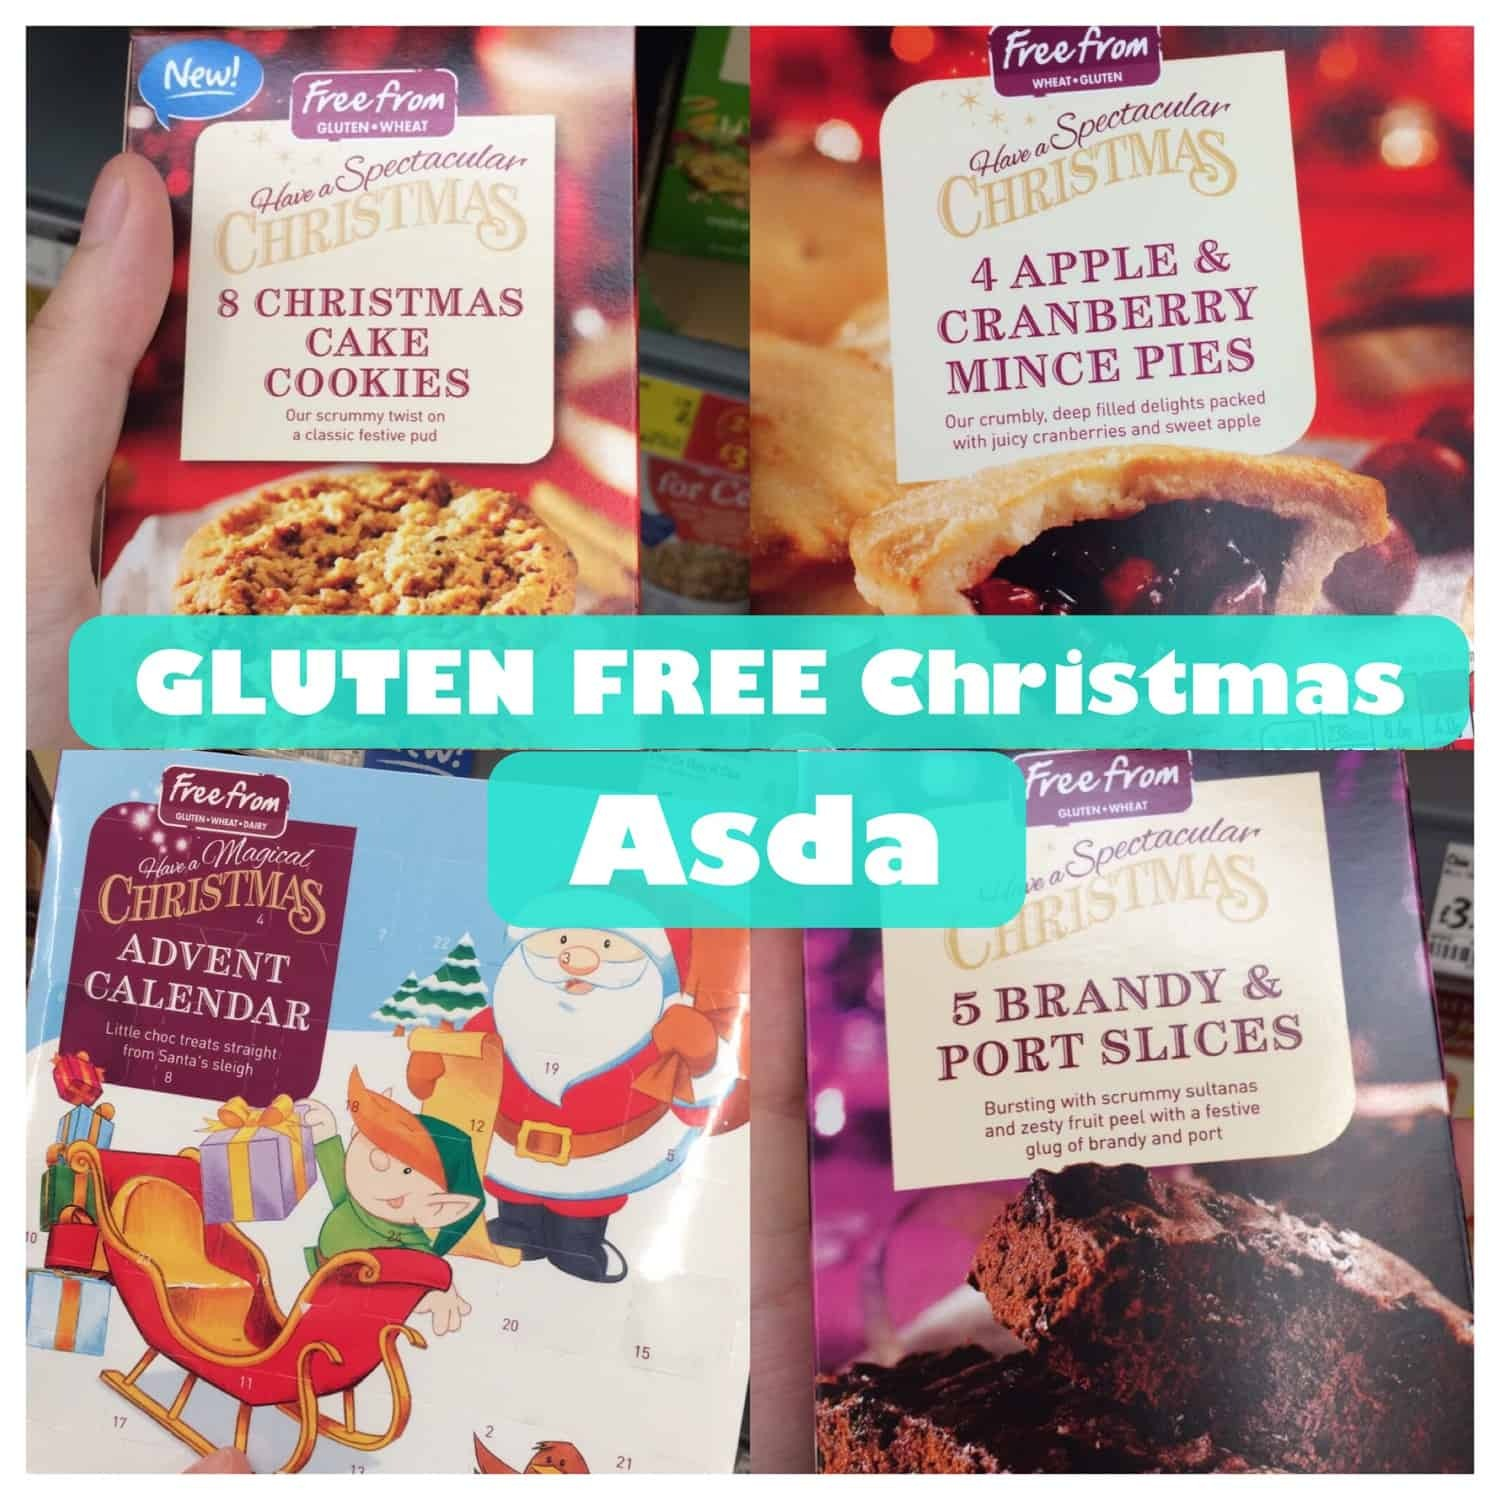 What Gluten Free Christmas Products are Asda selling this year?